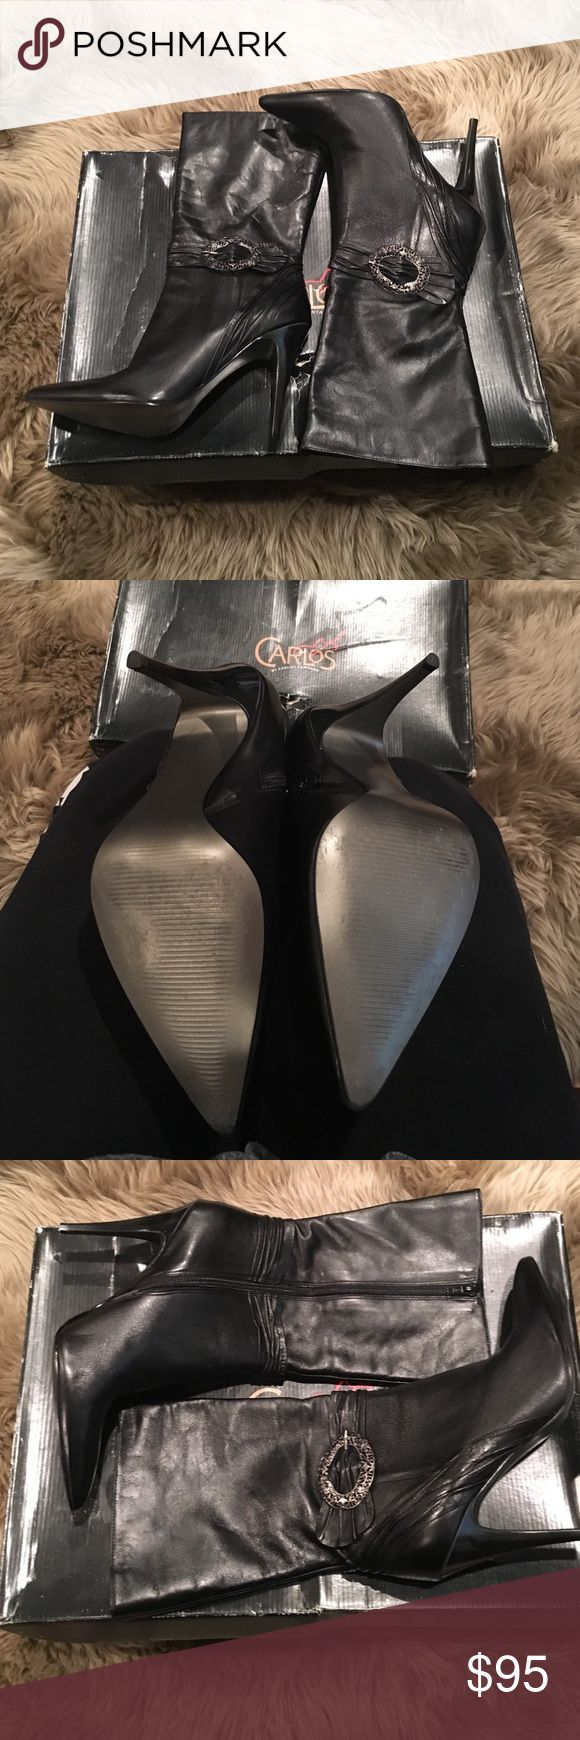 Carlos Santana boots Carlos Santana boots - worn once - excellent condition Carlos Santana Shoes Heeled Boots